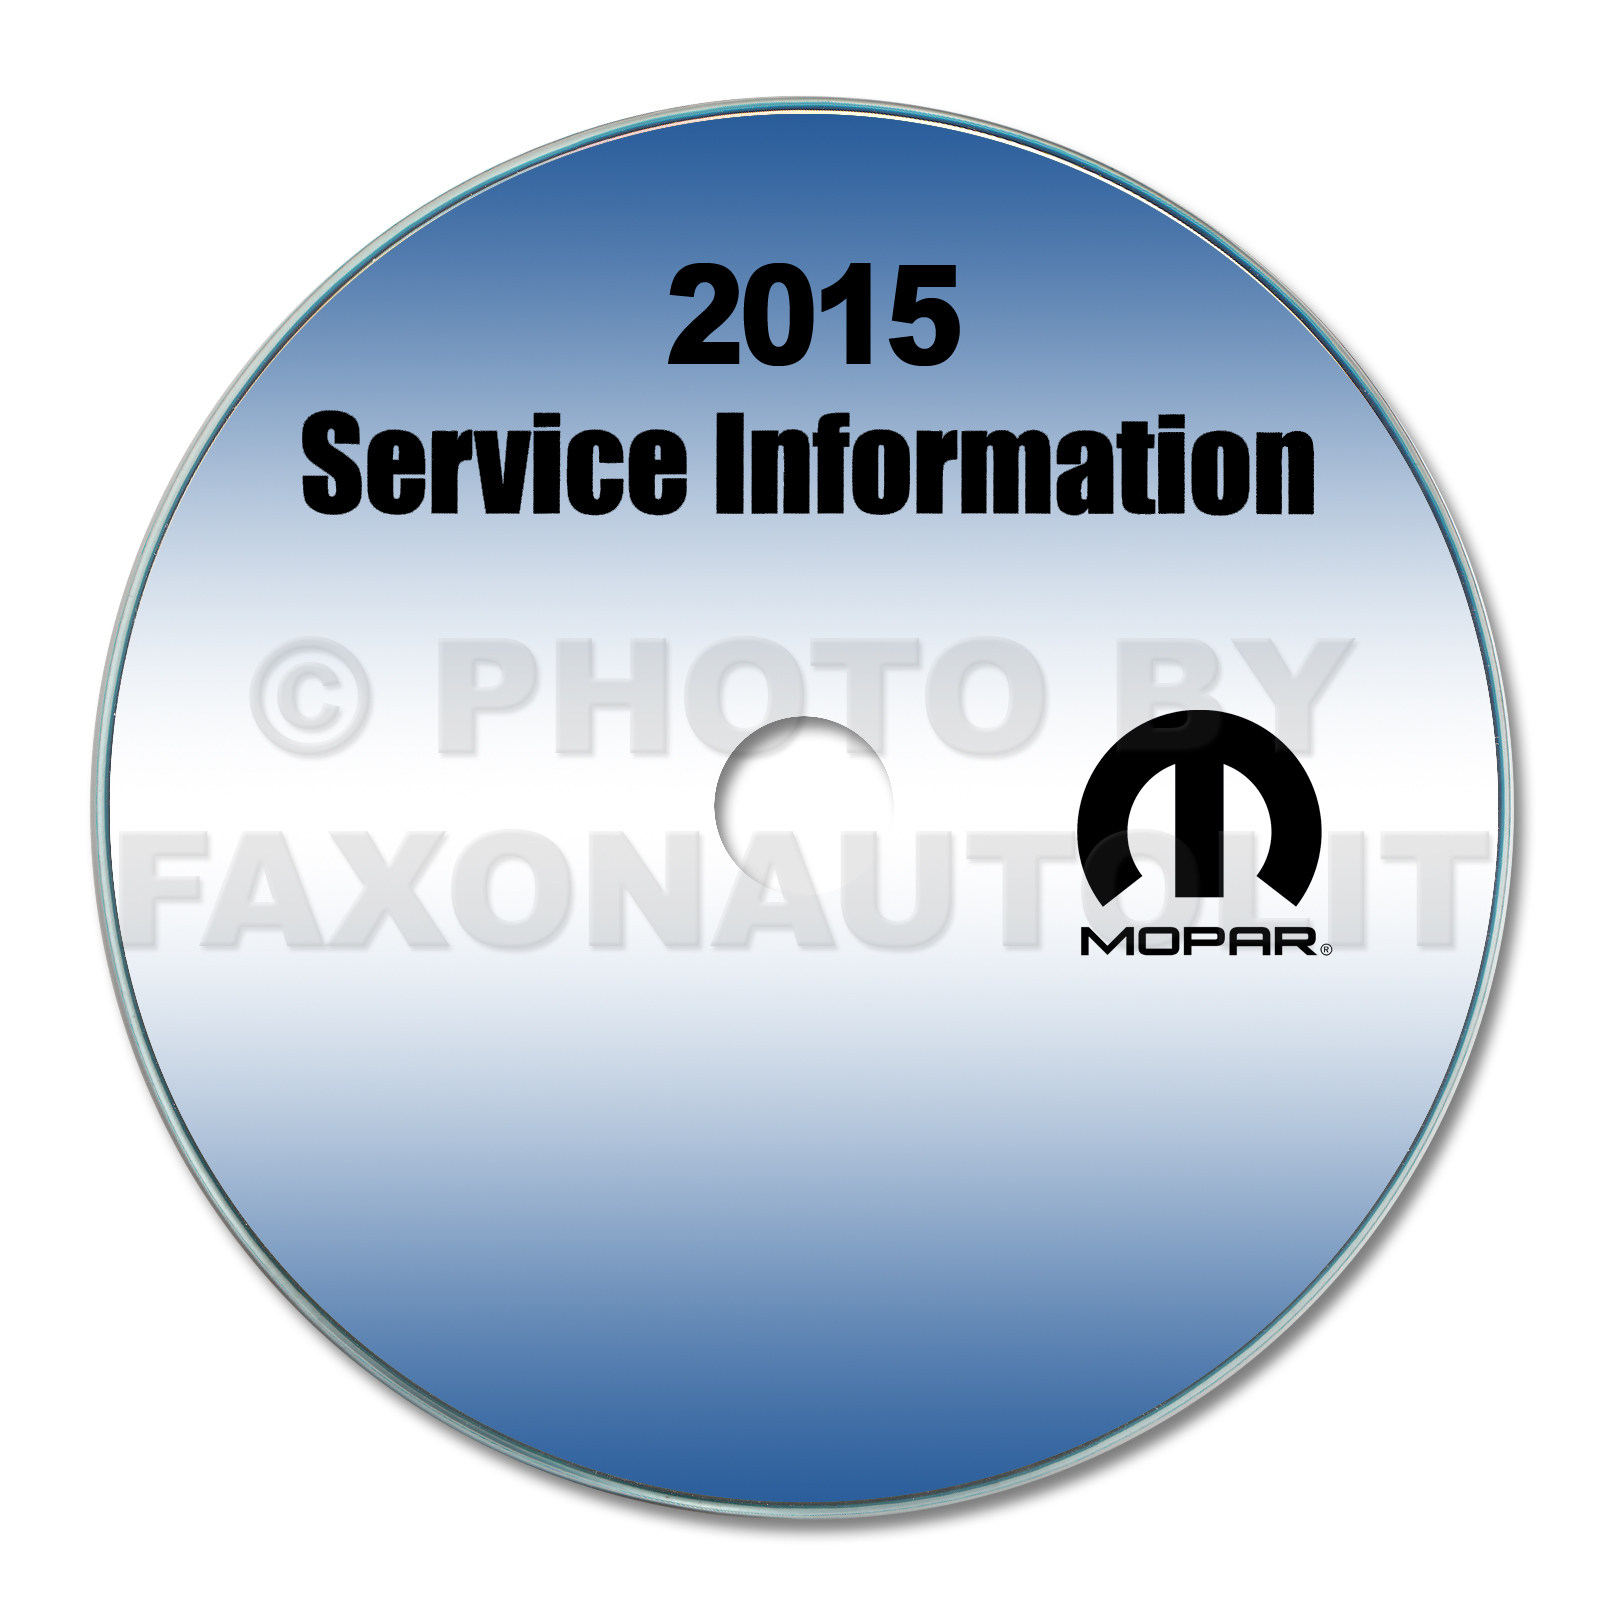 2015 Ram Promaster Repair Shop Manual CD-ROM Dodge 1500 2500 3500